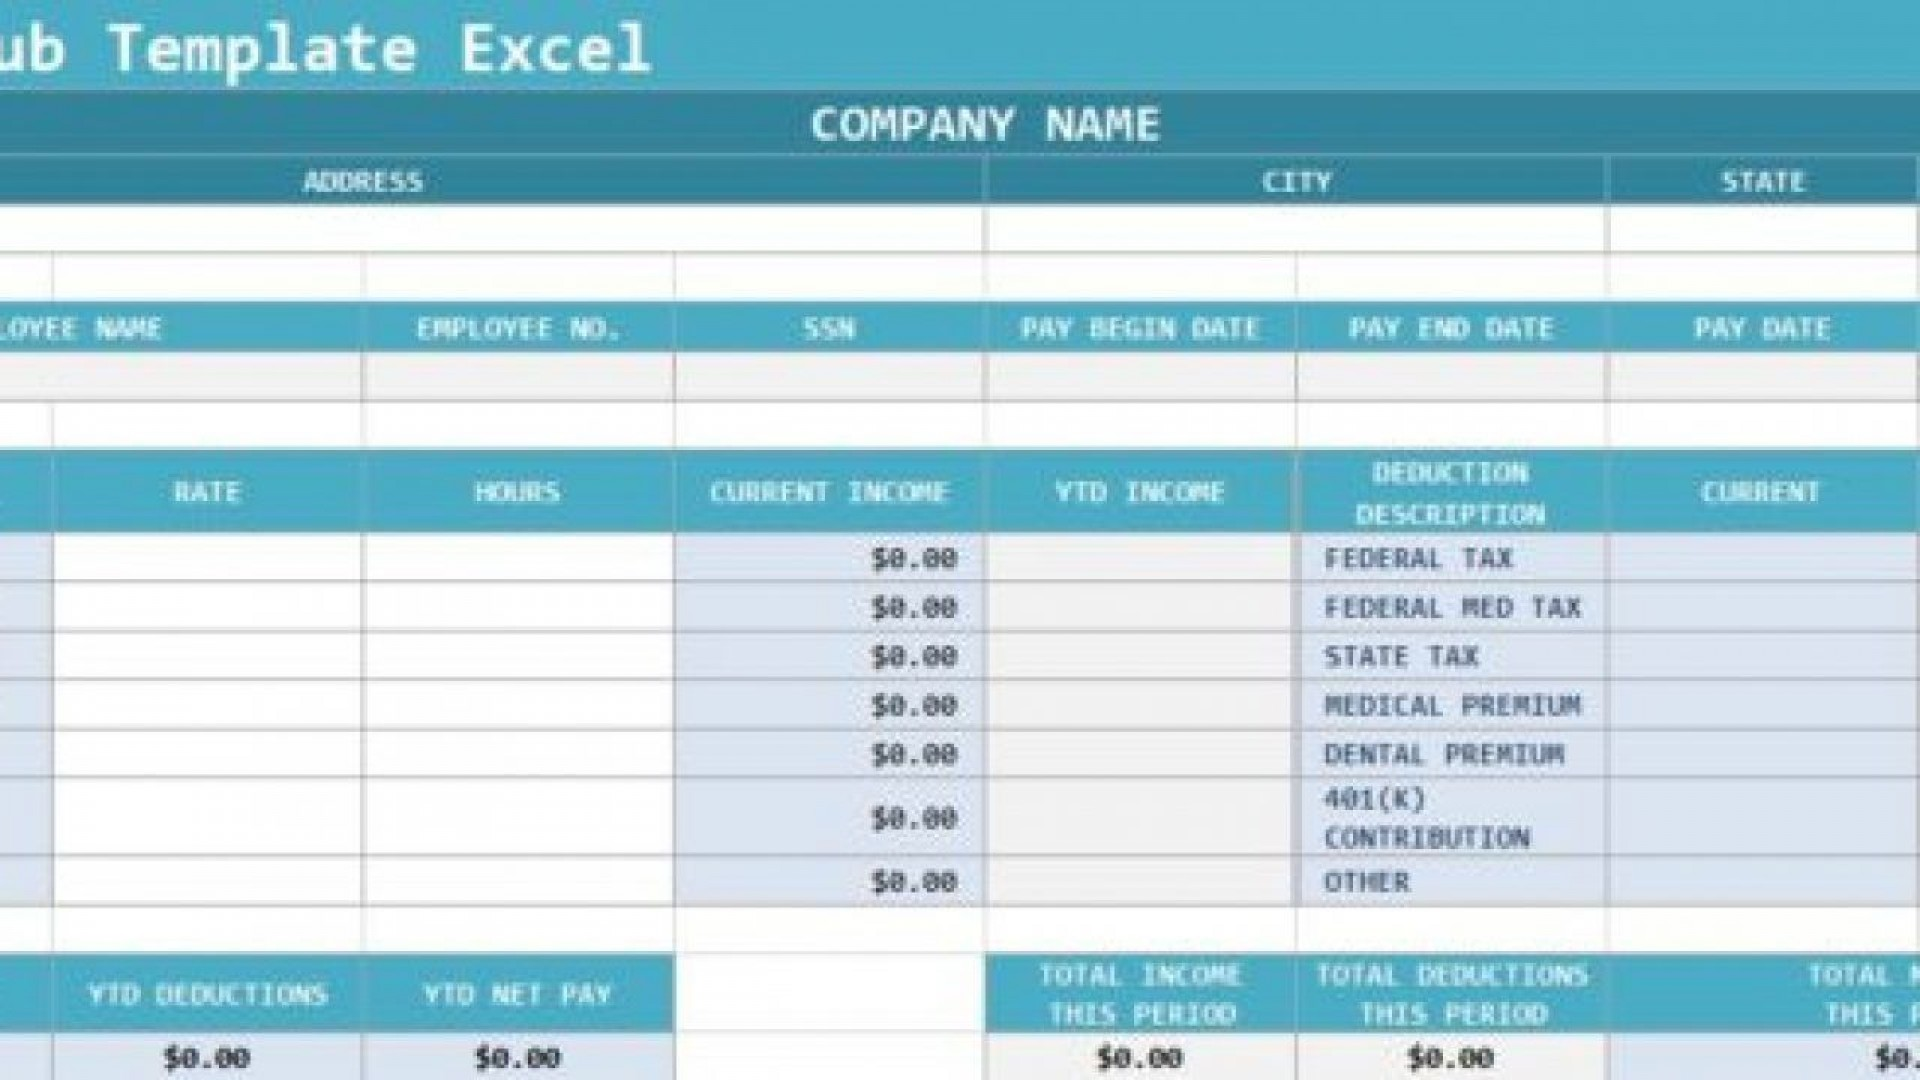 009 Shocking Pay Stub Excel Template Sample  Quickbook Paycheck Microsoft Check1920